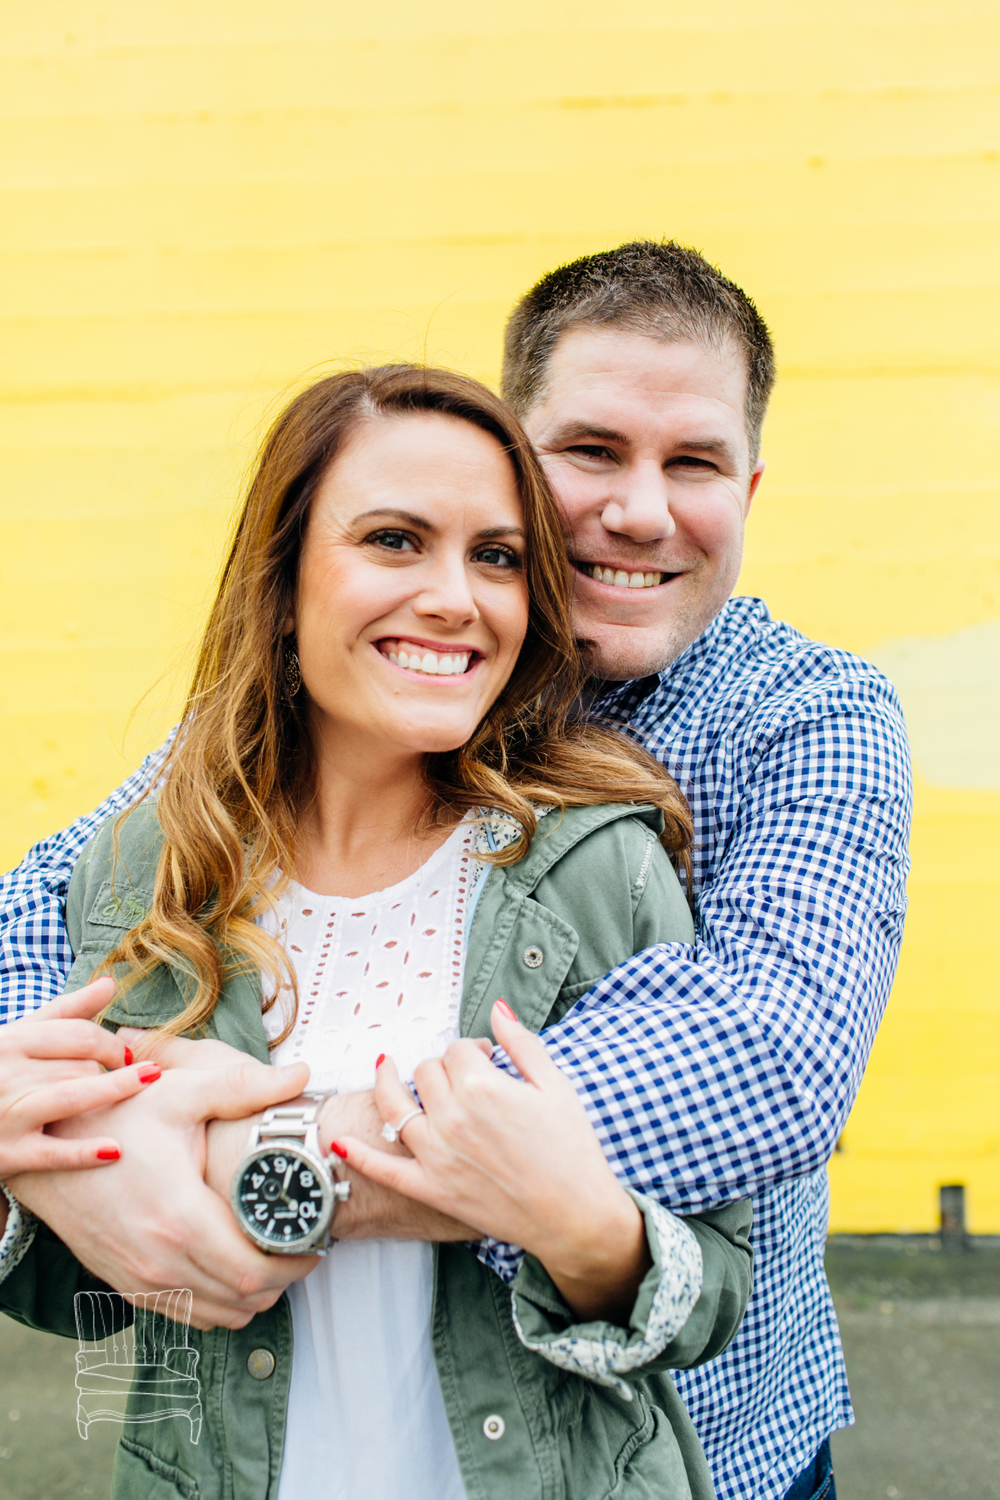 bellingham-engagement-photographer-photo-downtown-lindseyjames-38.jpg